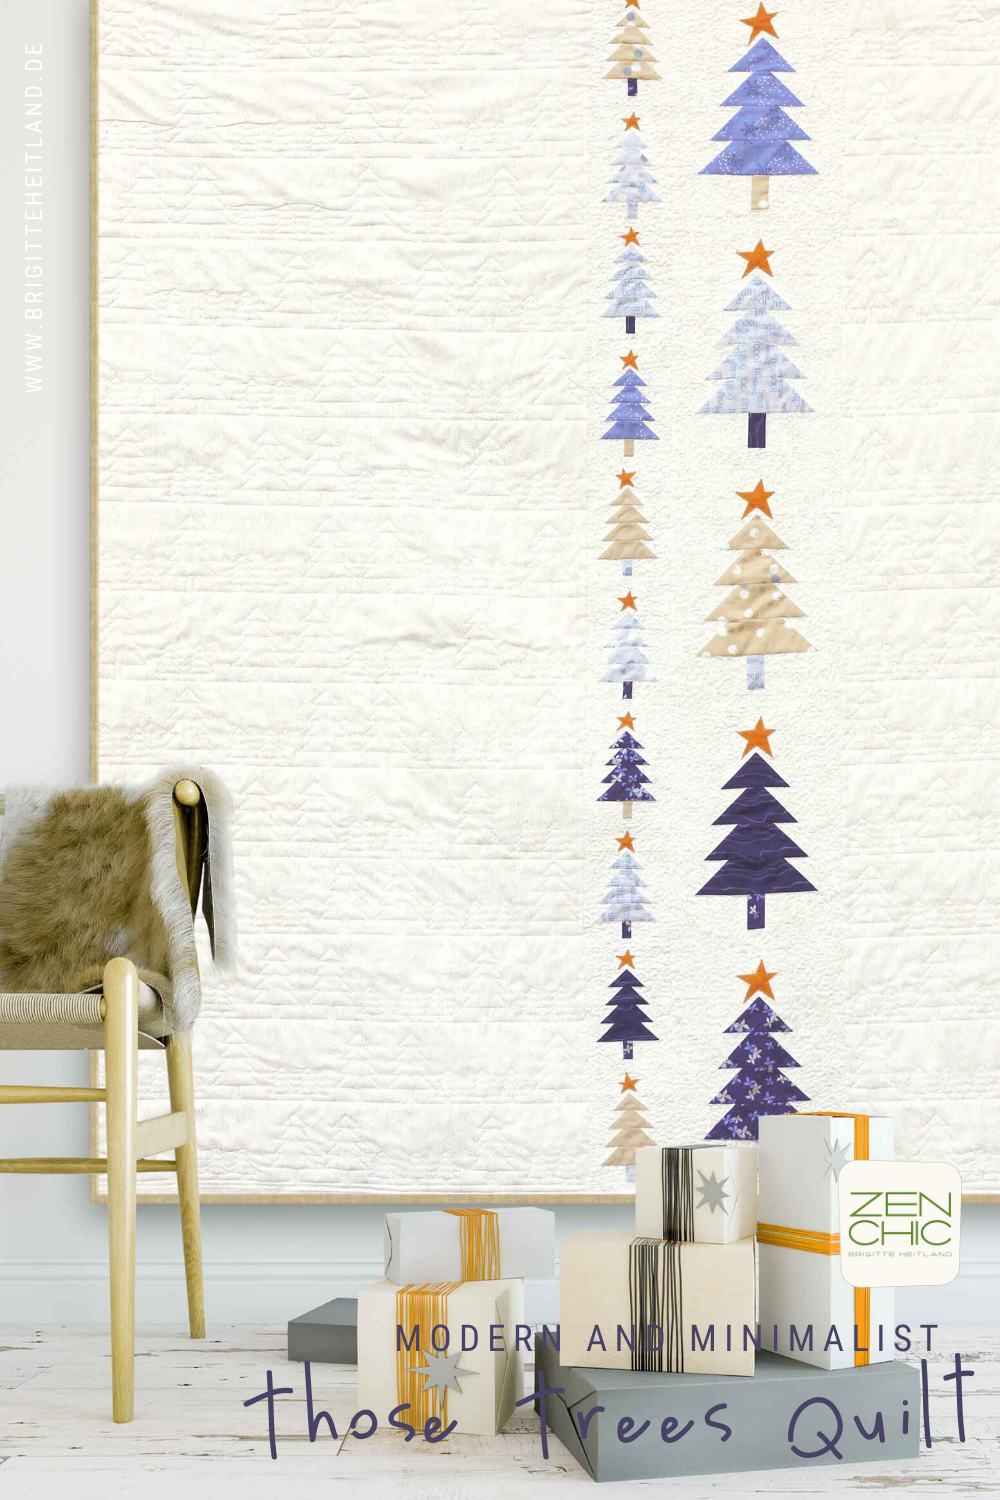 Those Trees Modern Christmas Quilt By Zen Chic In 2020 Modern Christmas Quilt Christmas Sewing Patterns Christmas Quilt Patterns